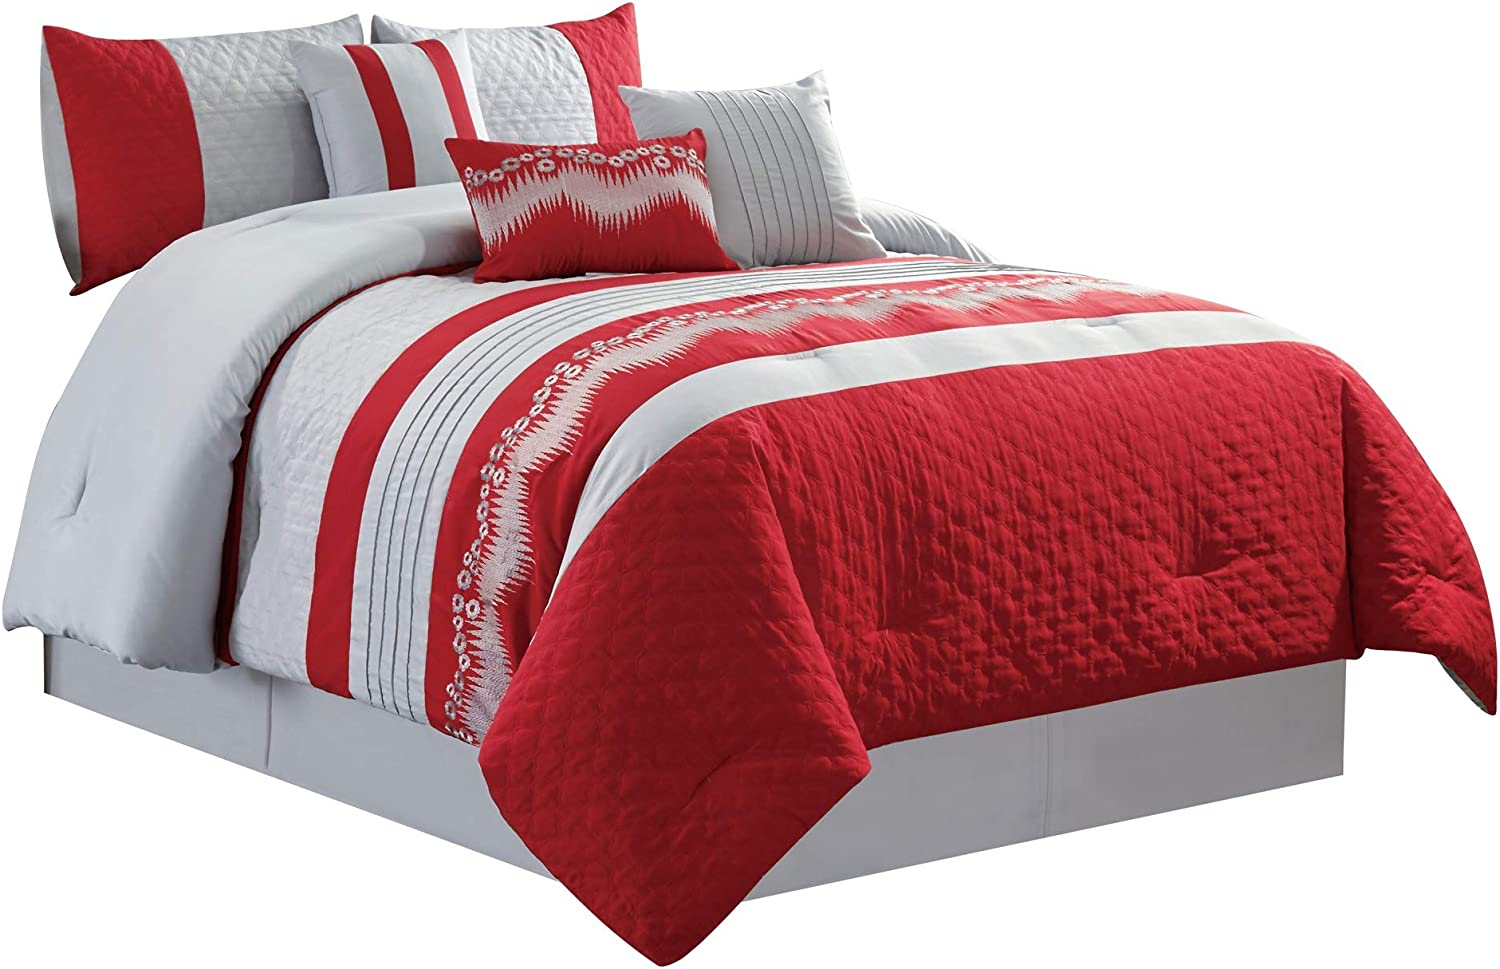 WPM Embroidered 7 Piece Bedding Set, Silver Grey, Red Comforter with Bed Skirt, Pillow Shams and Accent Pillows Size Bed in a Bag-WAKANA (King)